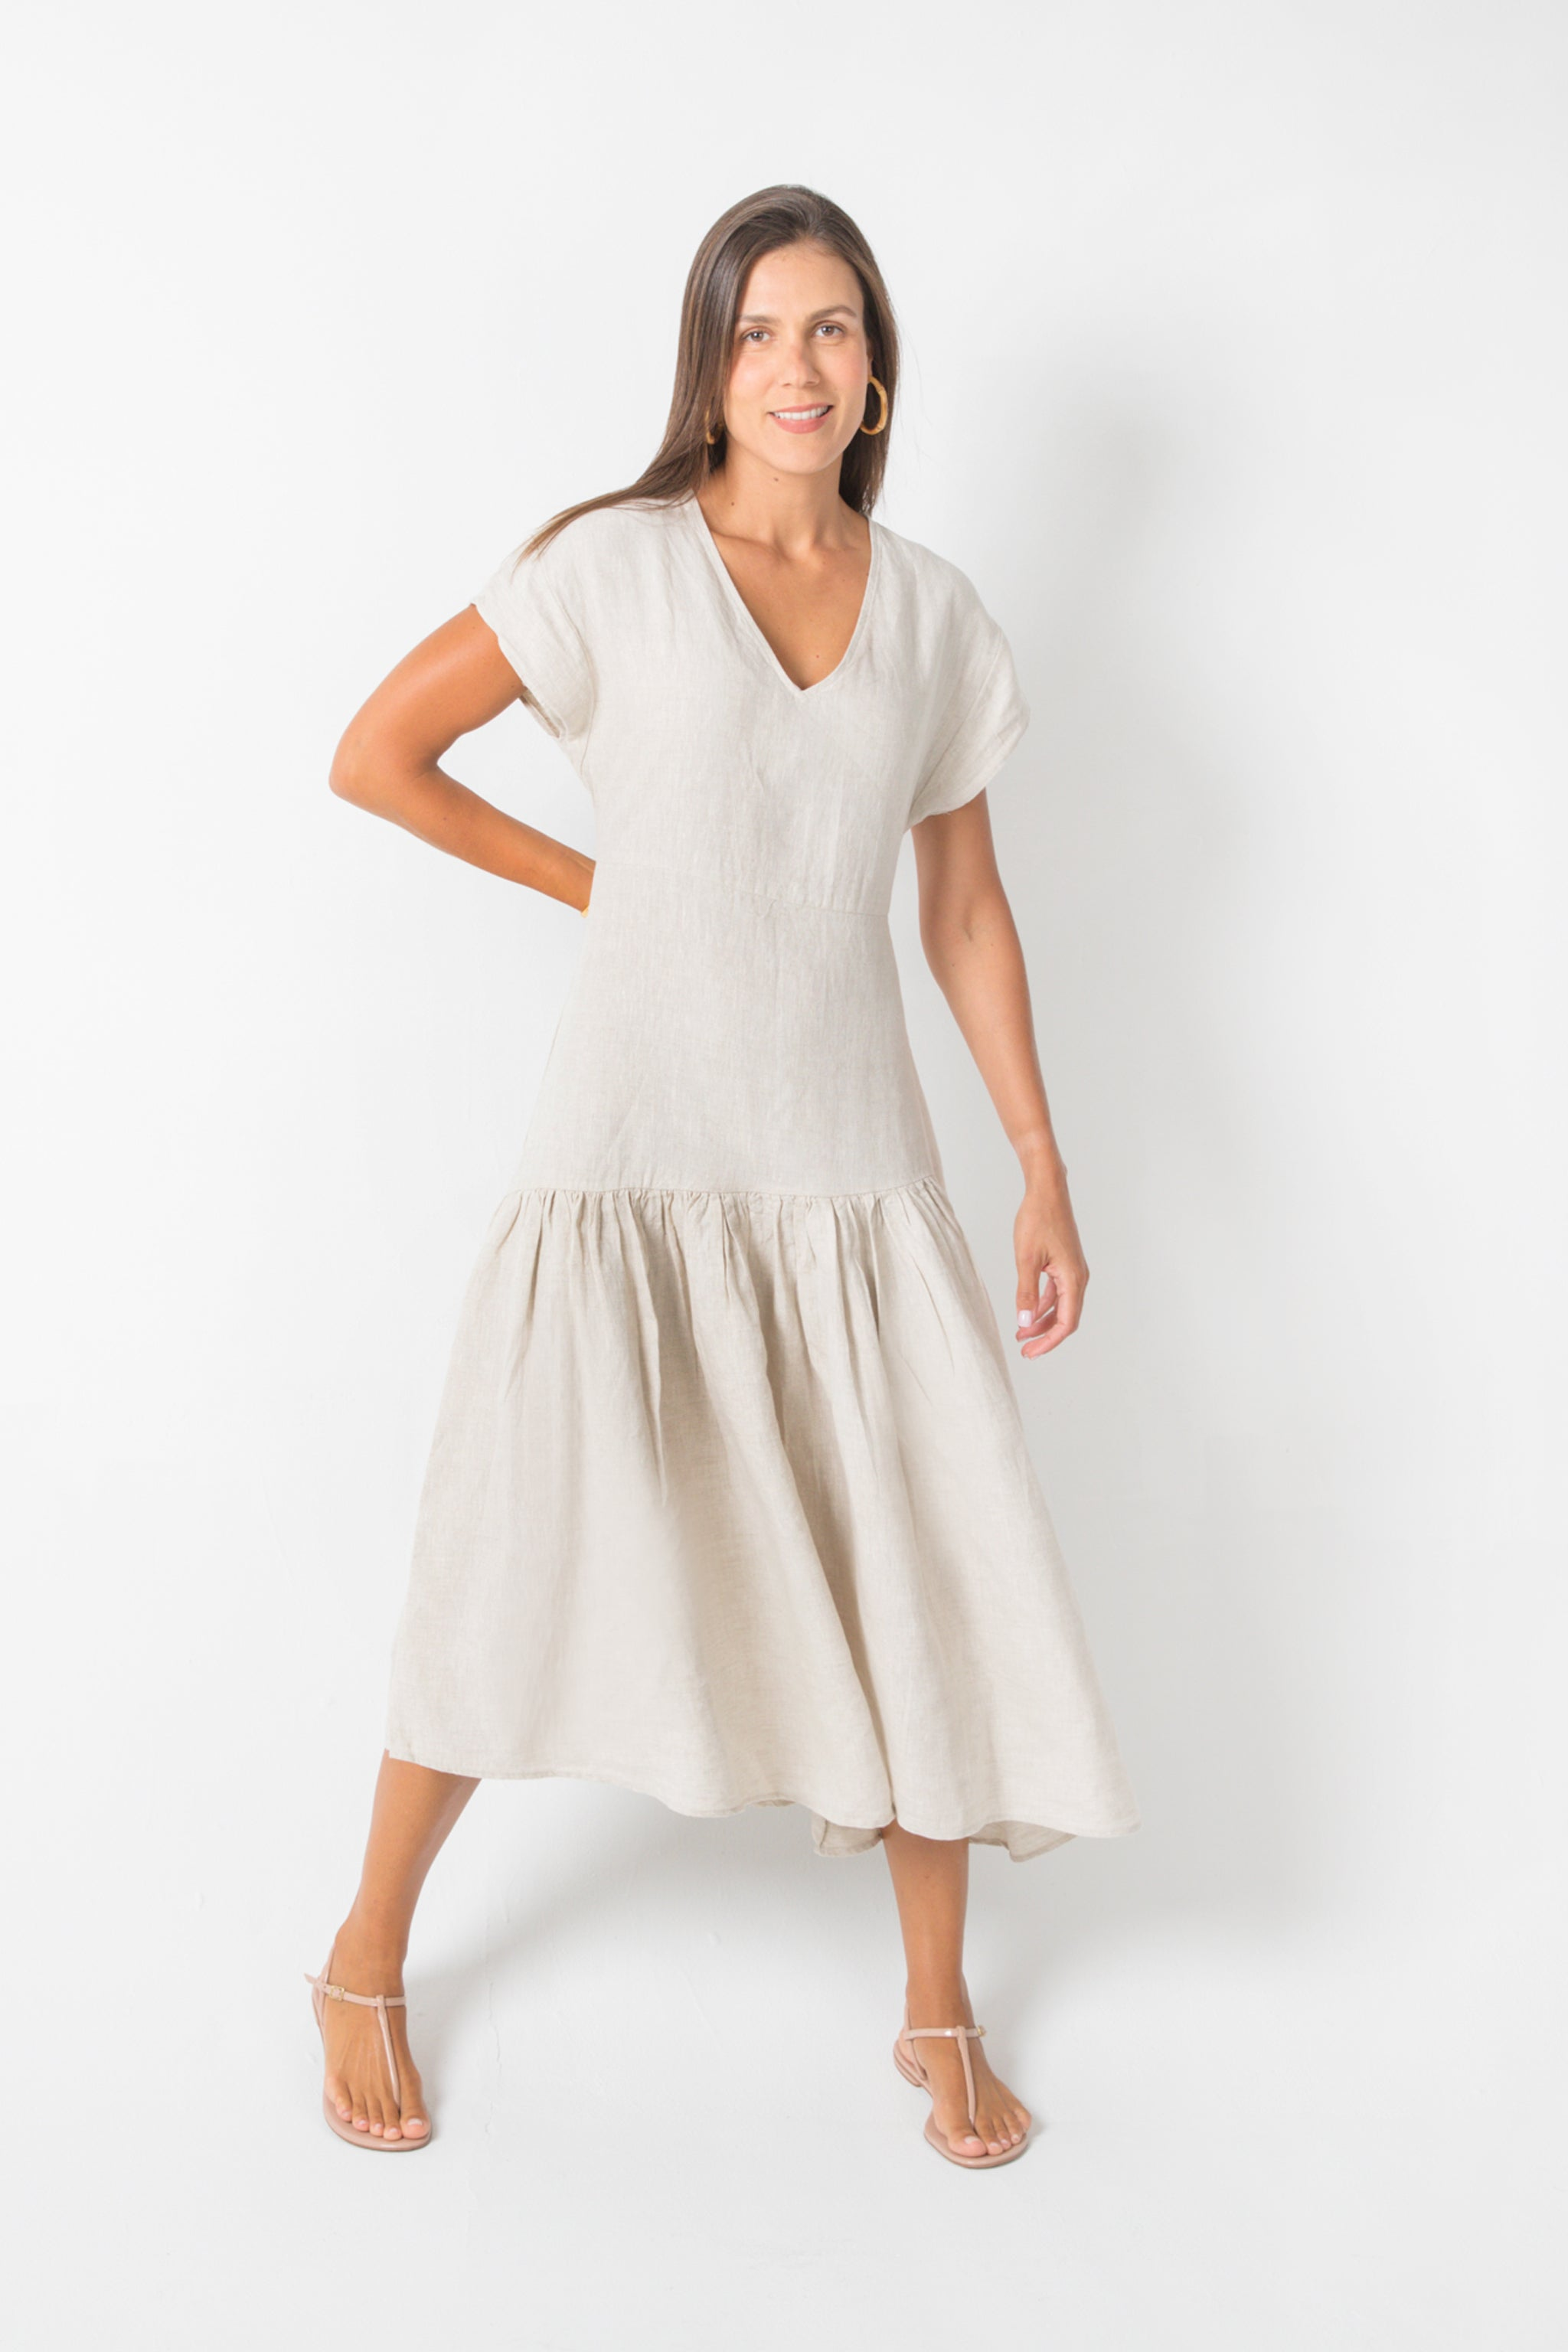 Natural Maxi Long Dress in 100% Linen V-Neck A-Line Silhouette